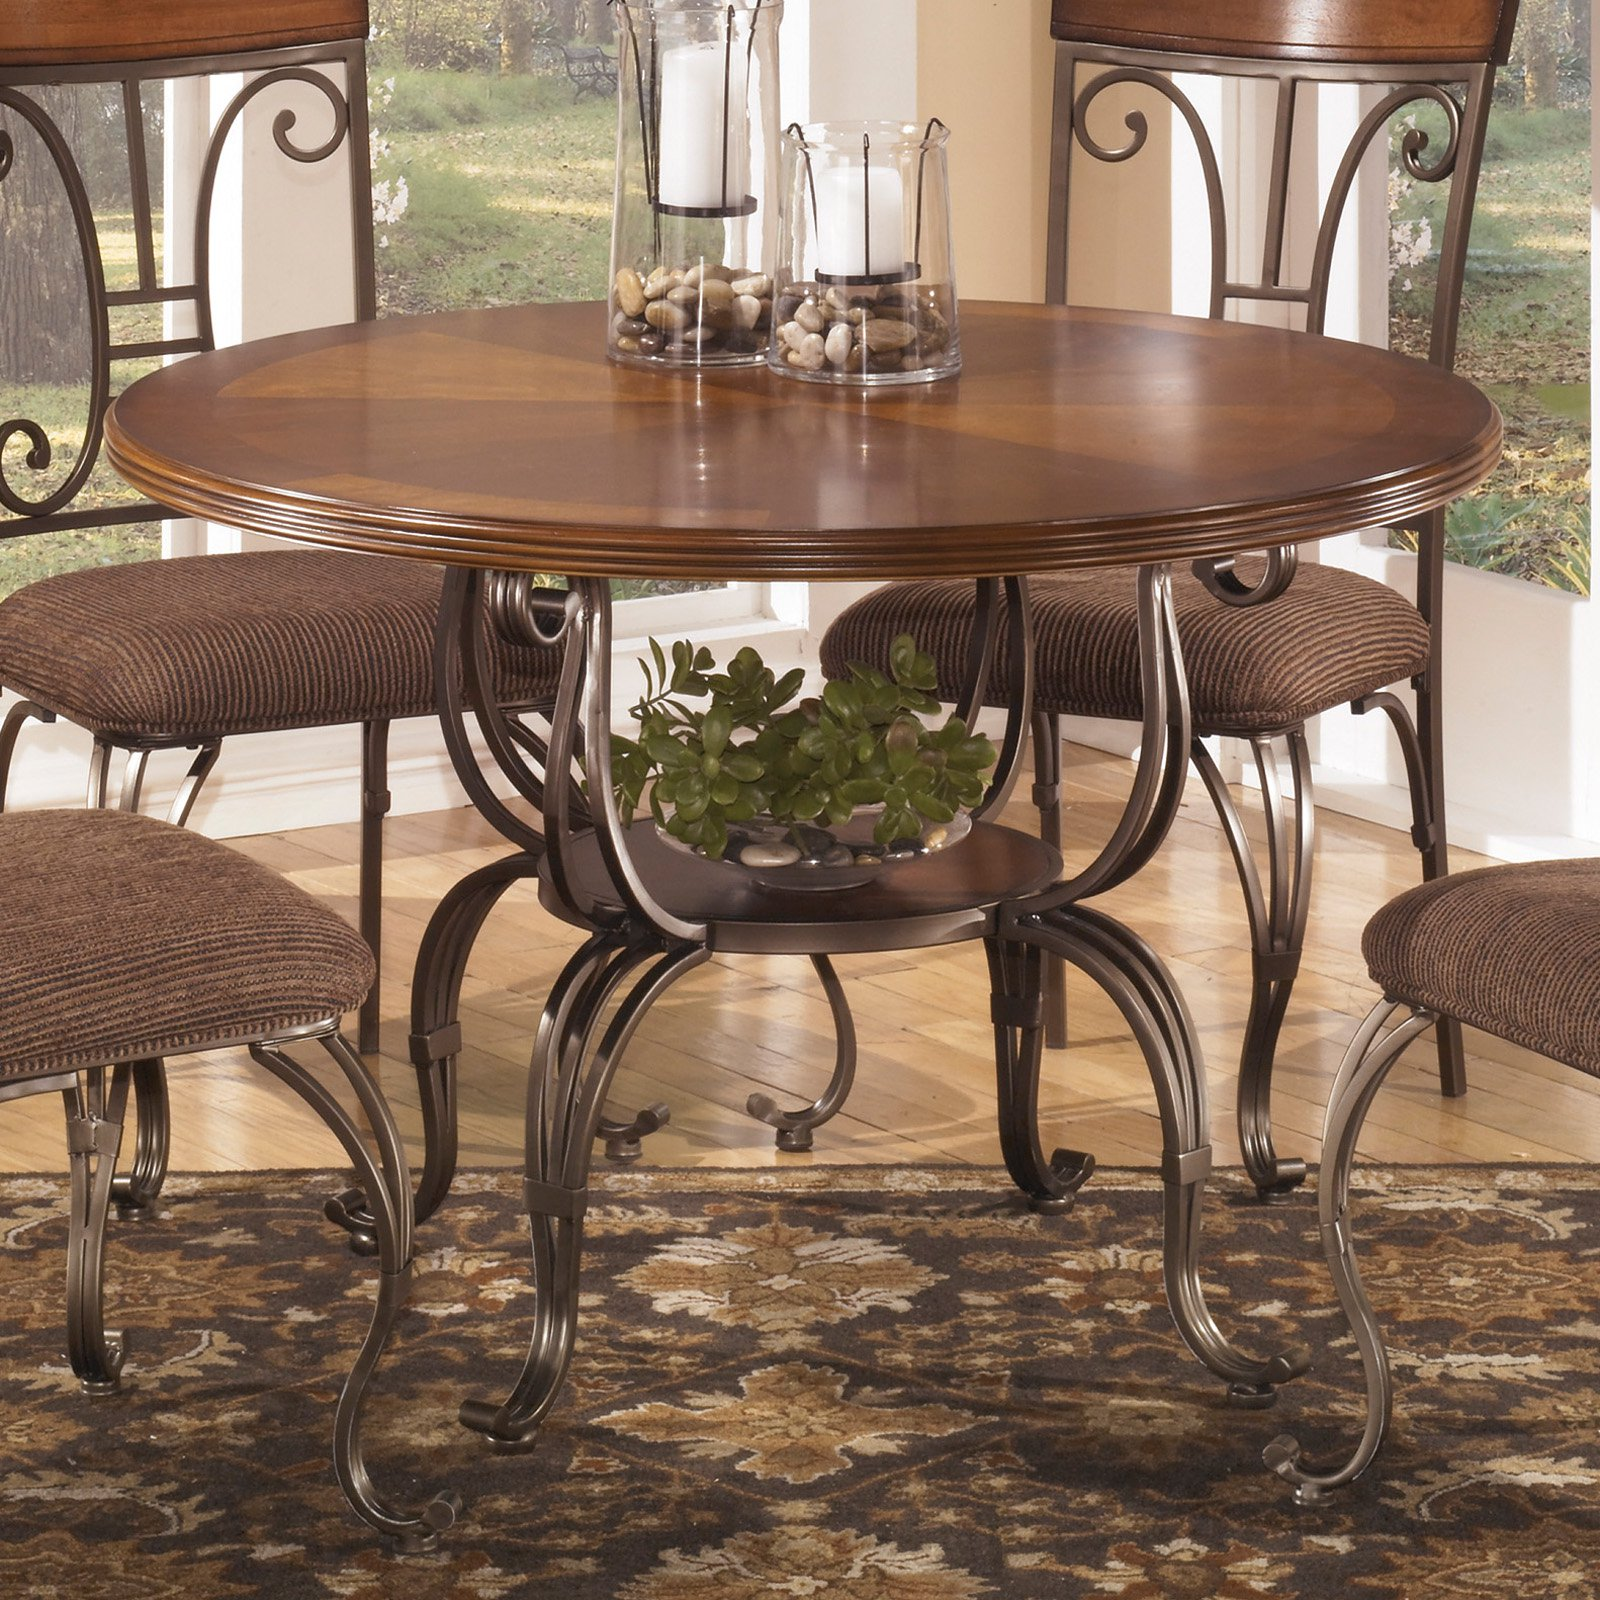 Signature Design by Ashley Plentywood Round Dining Table by Ashley Furniture